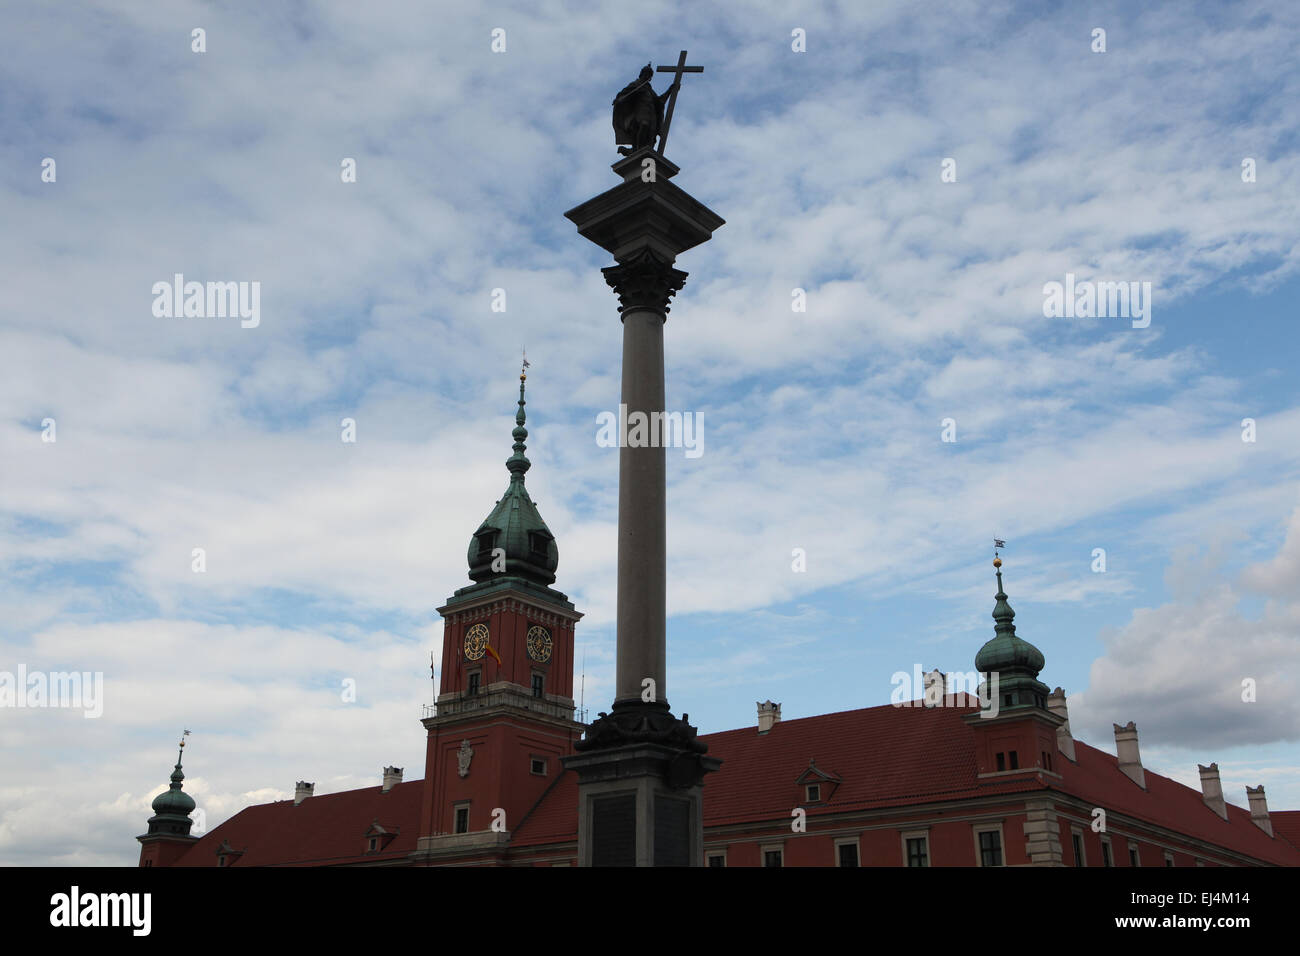 King Sigismund's Column and the Royal Castle in Warsaw, Poland. - Stock Image